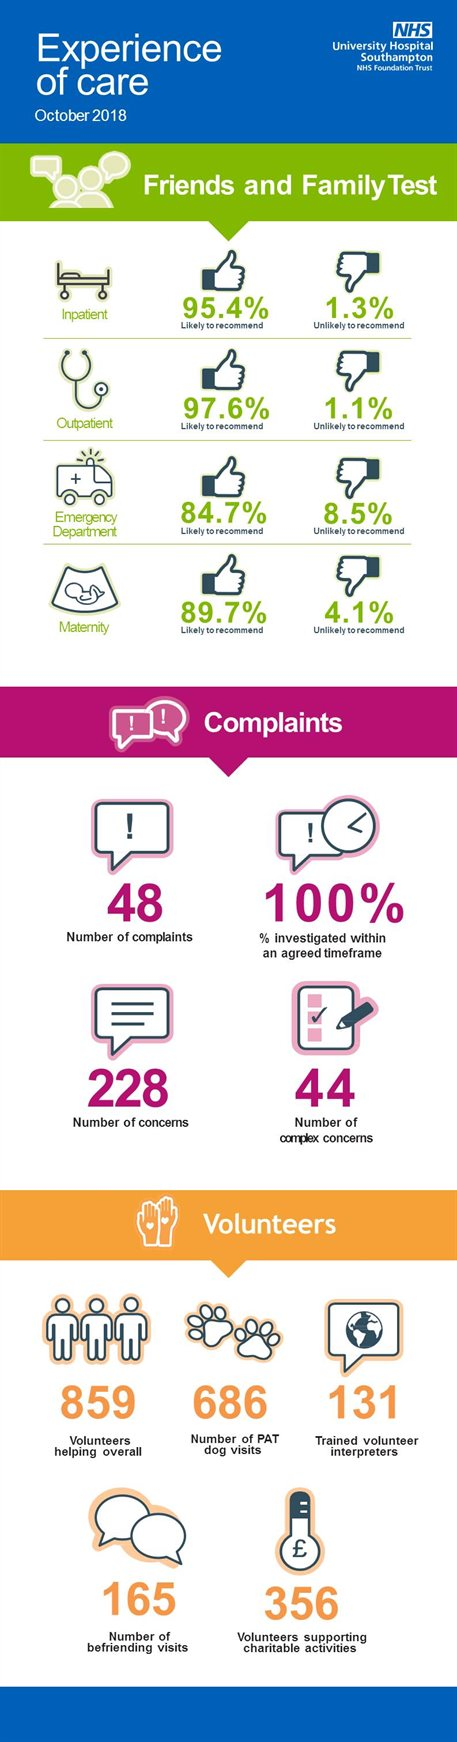 Experience of care - FFT complaints and volunteers October